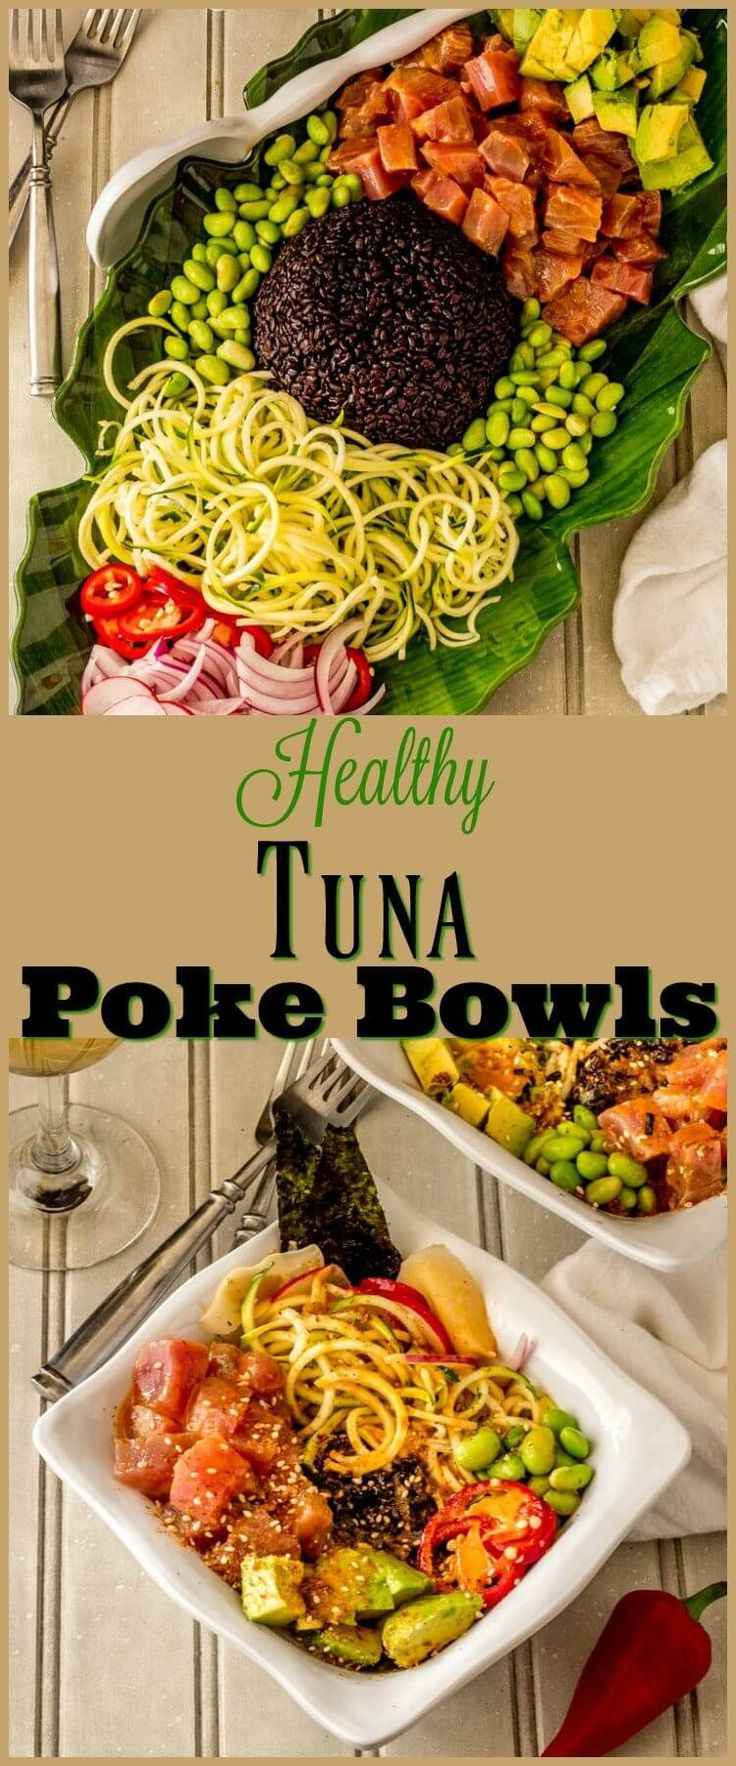 Healthy Tuna Poke Bowl - Chunks of succulent raw ahi tuna dressed up with a light sesame ginger vinaigrette star in my customizable Healthy Tuna Poke Bowl... This nutritious powerhouse dish is bursting with flavor, and so quick and easy to make! fresh tuna recipes   poke bowl recipe   main dish salads